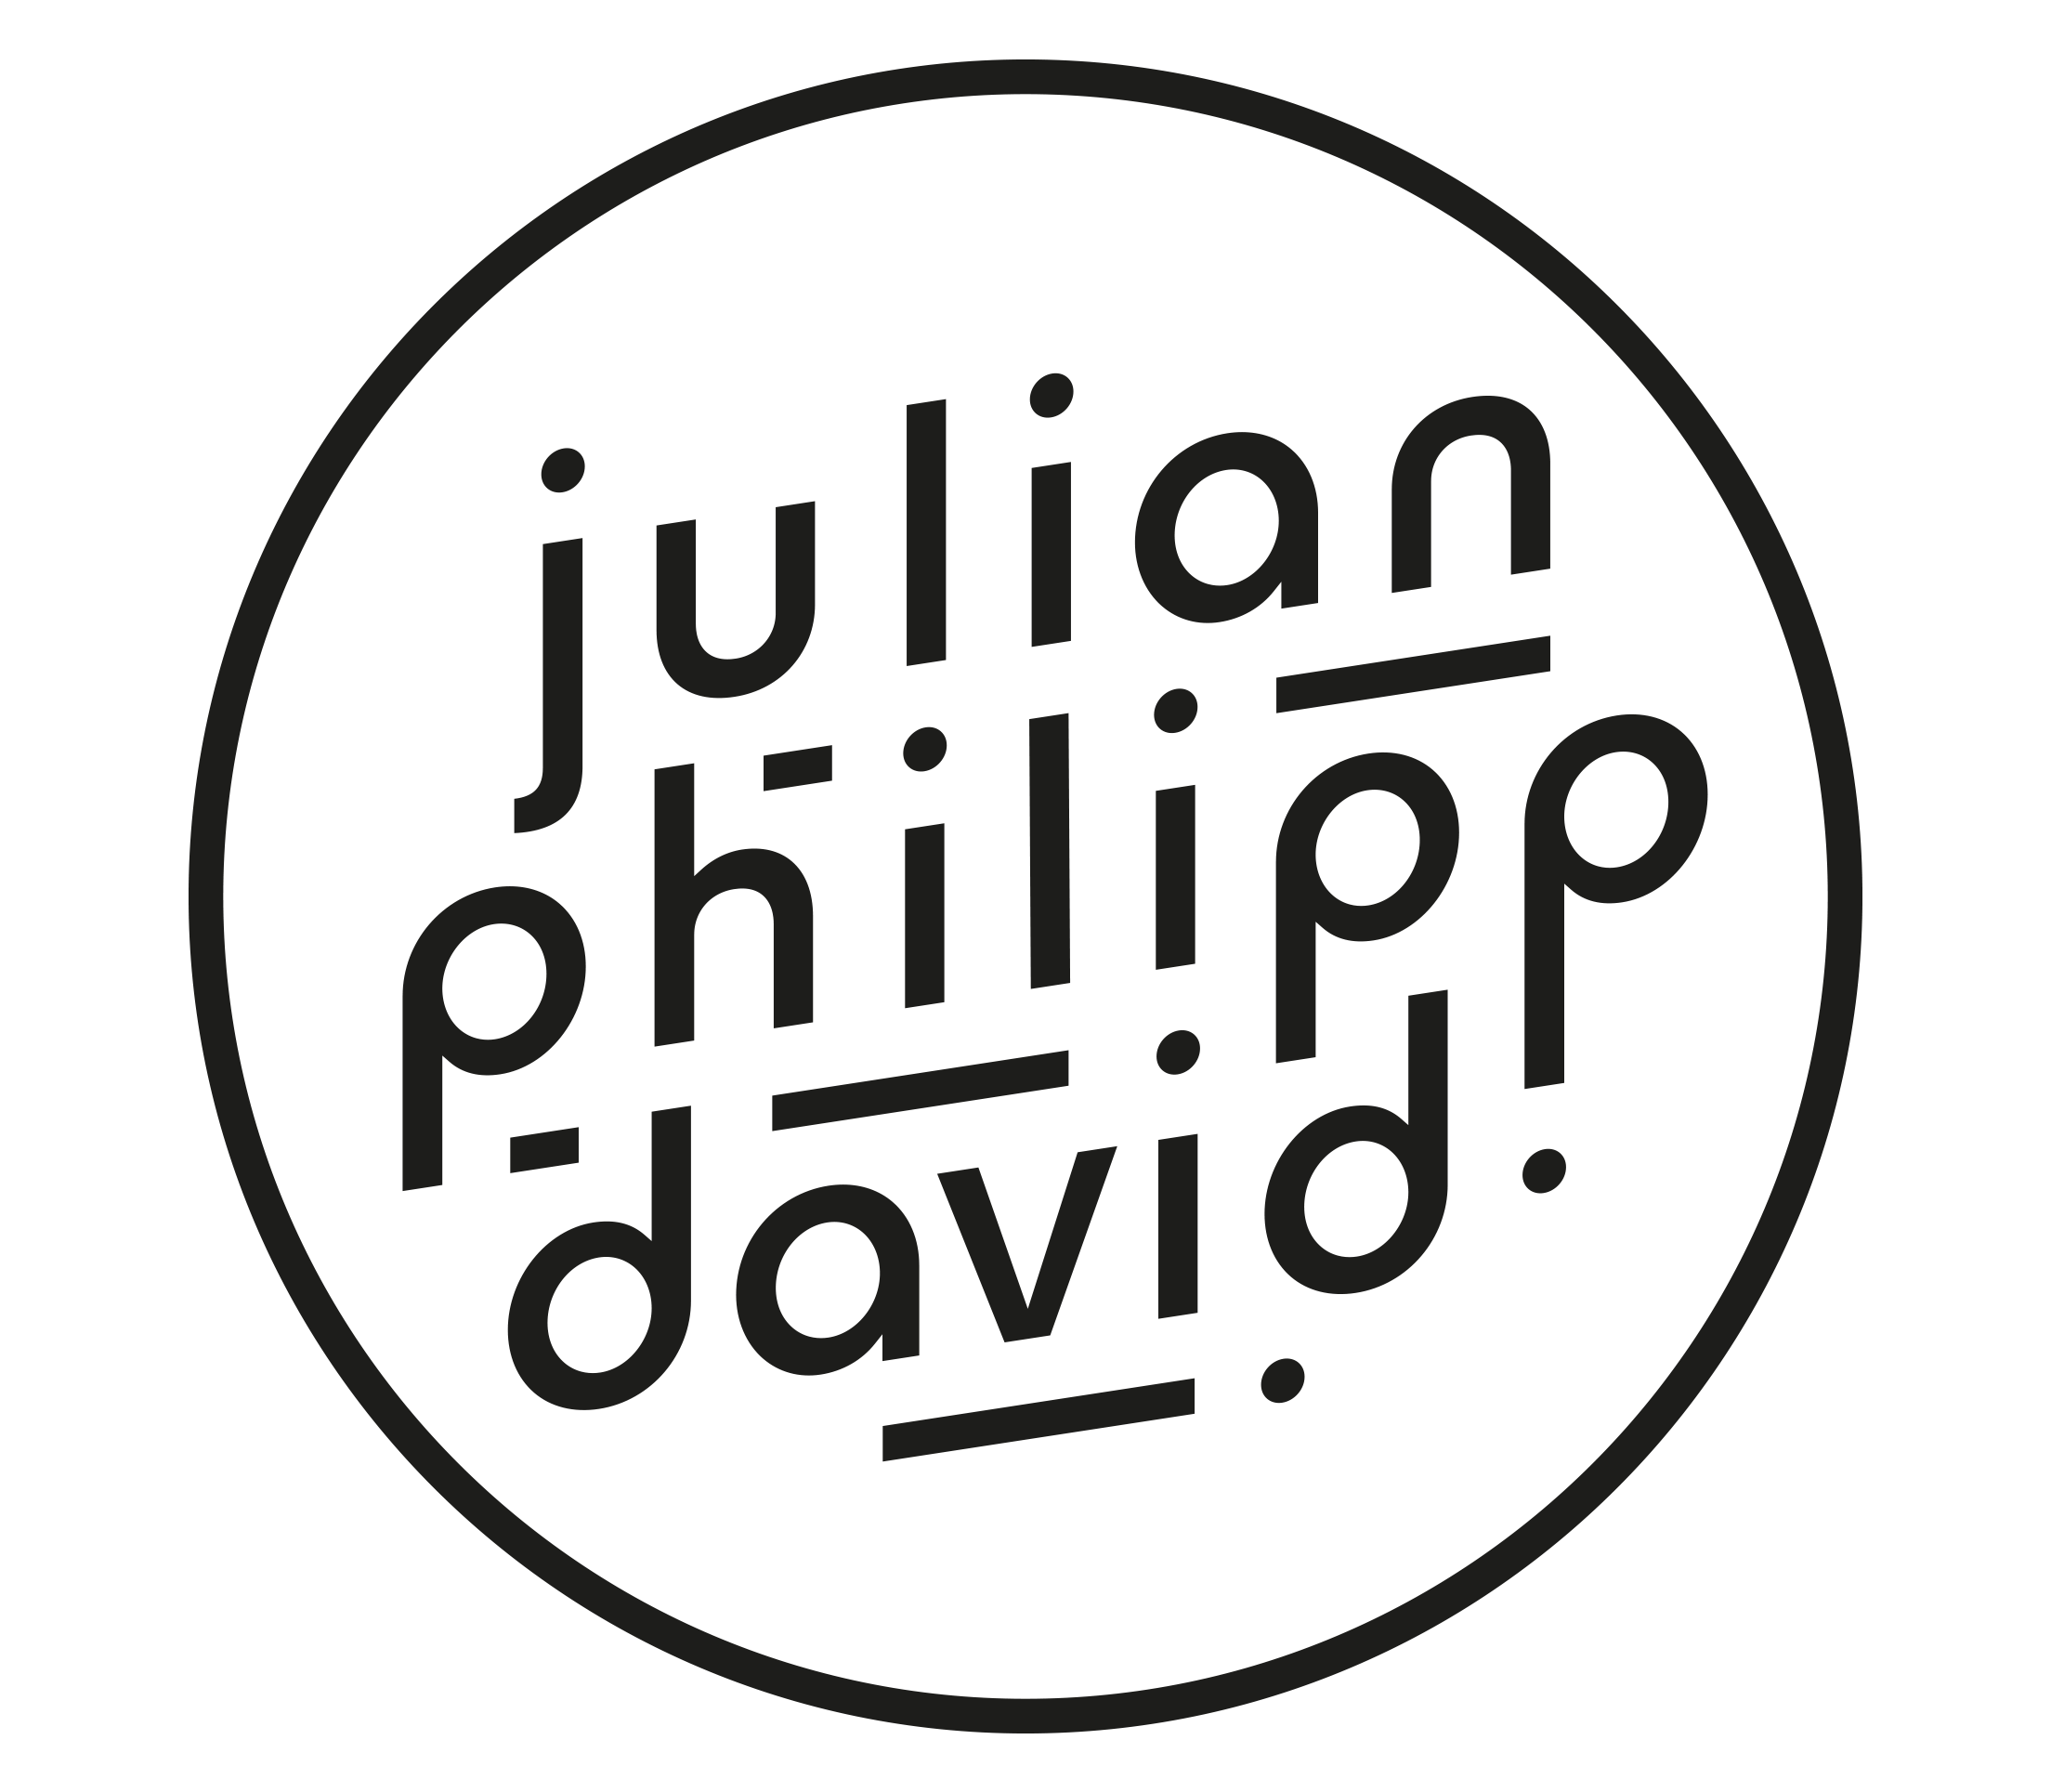 Julian Philipp David - Shop